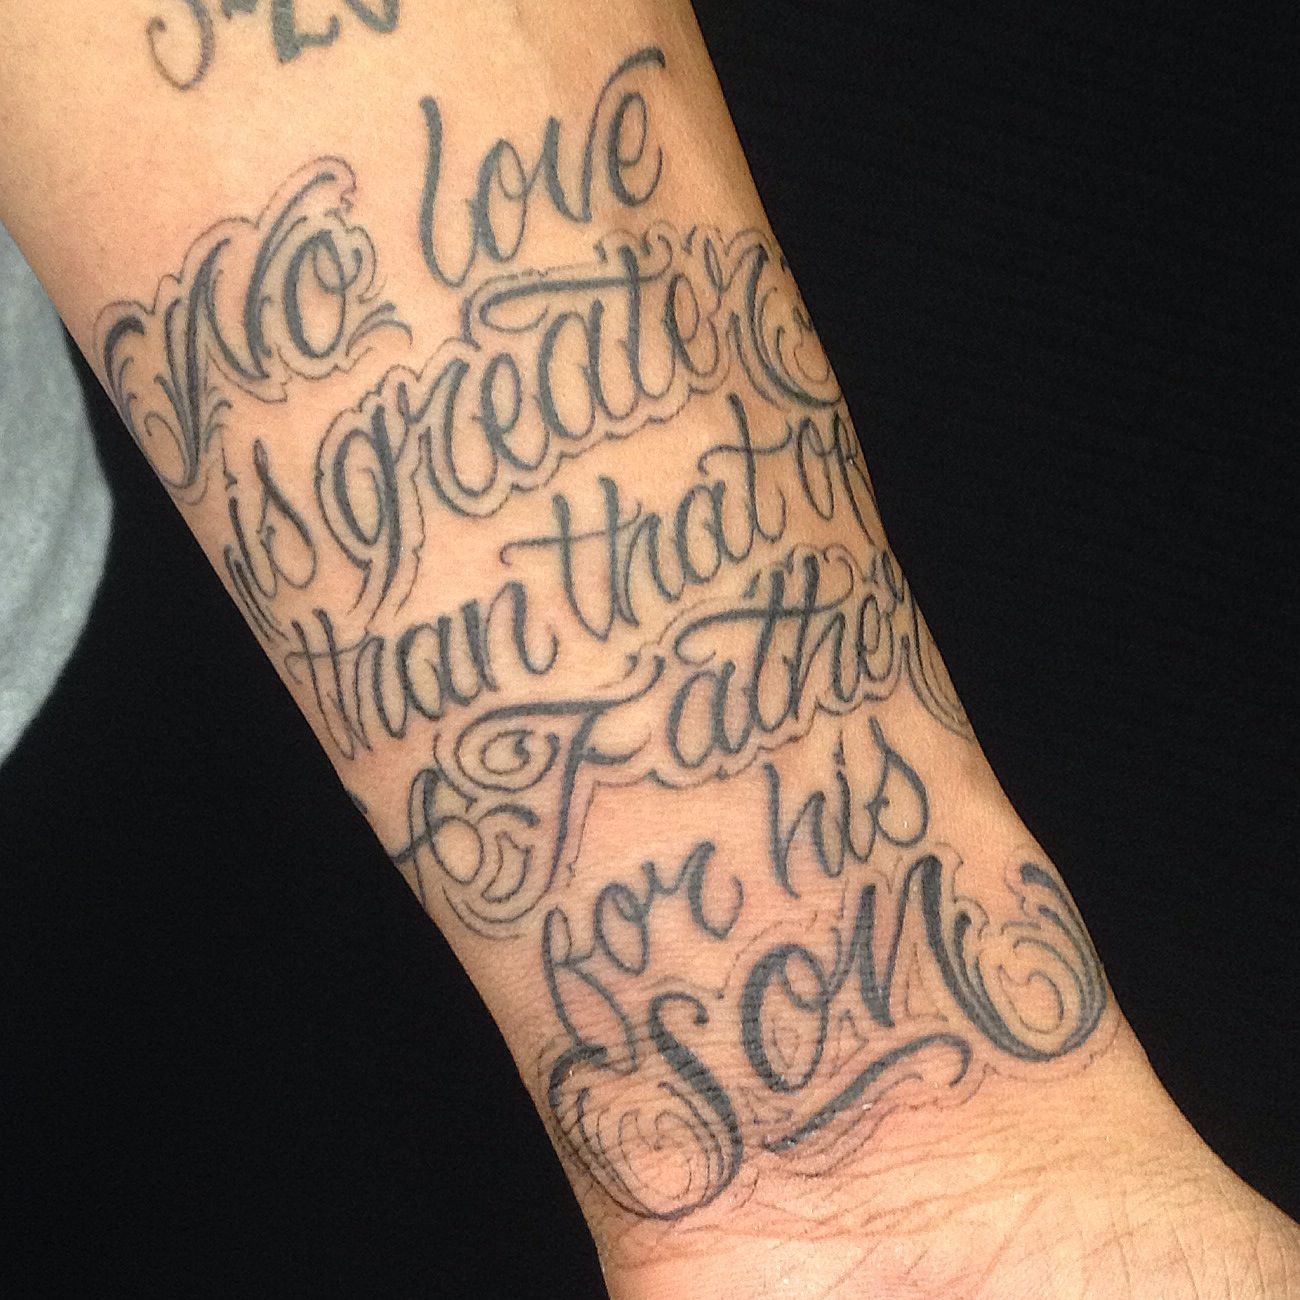 Tattoo Designs For Your Son: No Love Is Greater Than Of A Father For His Son